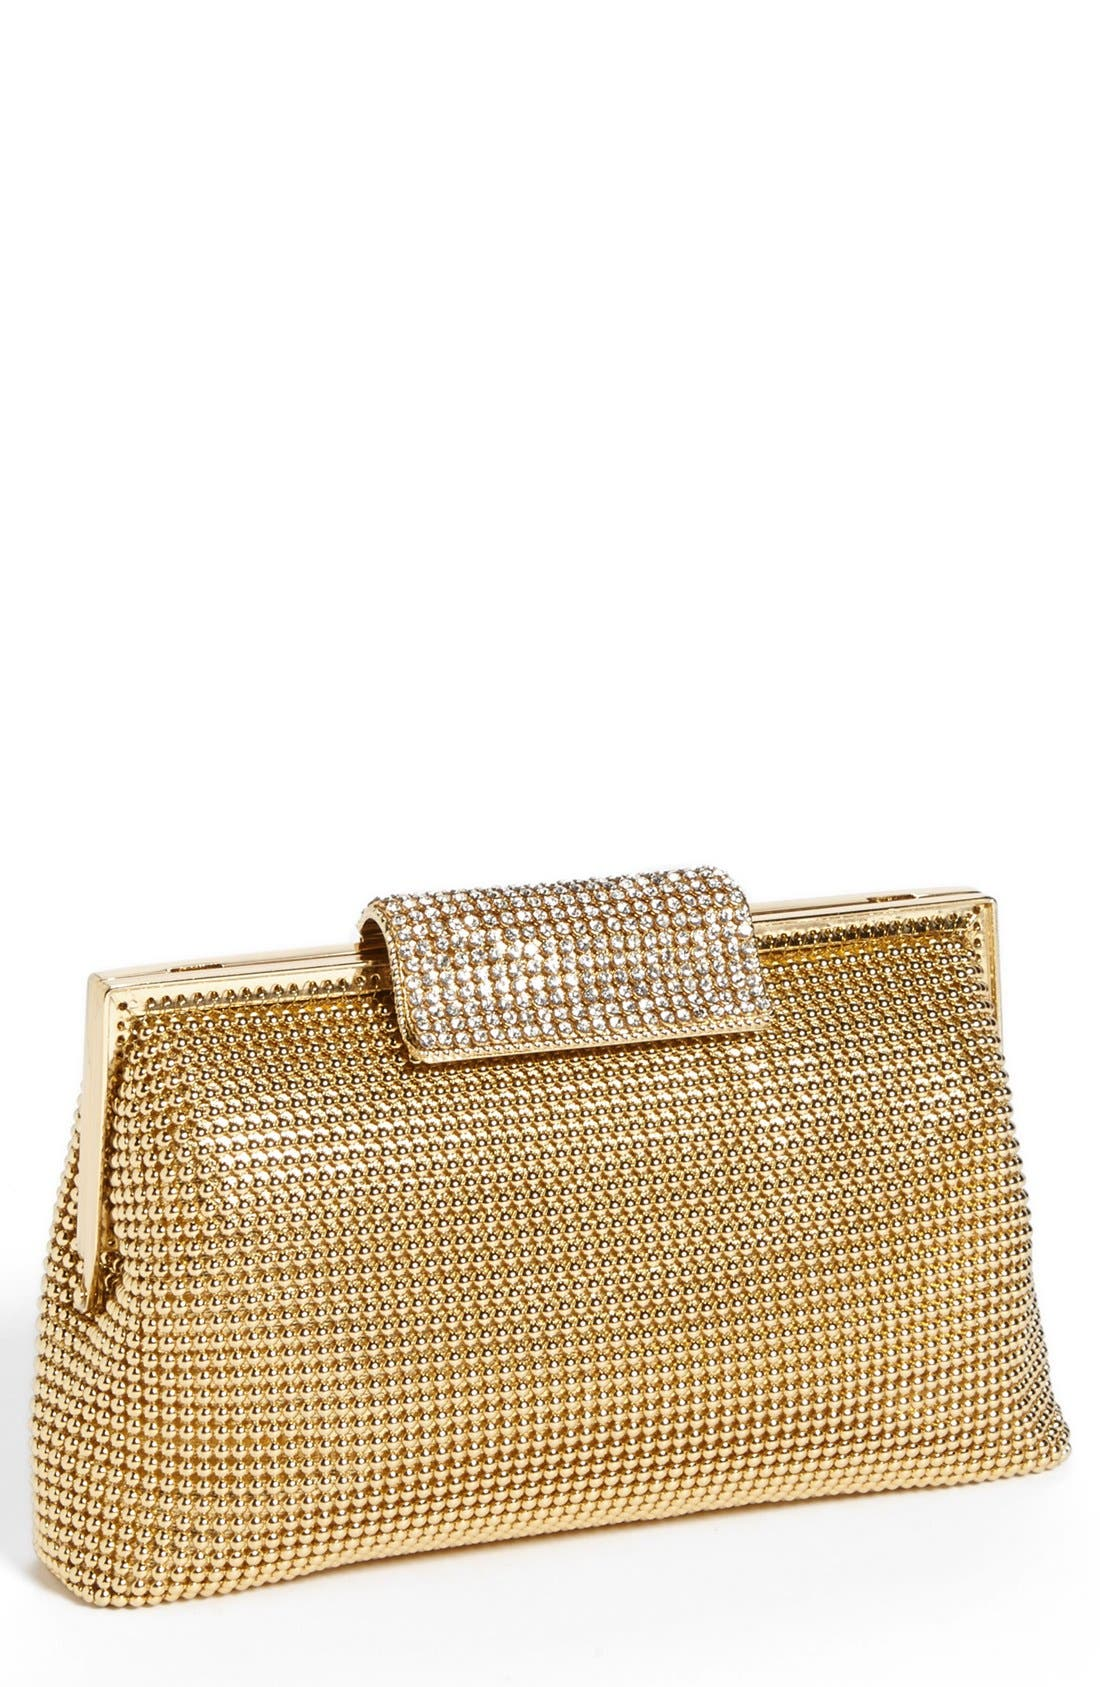 Crystal Frame Clutch,                             Main thumbnail 1, color,                             GOLD